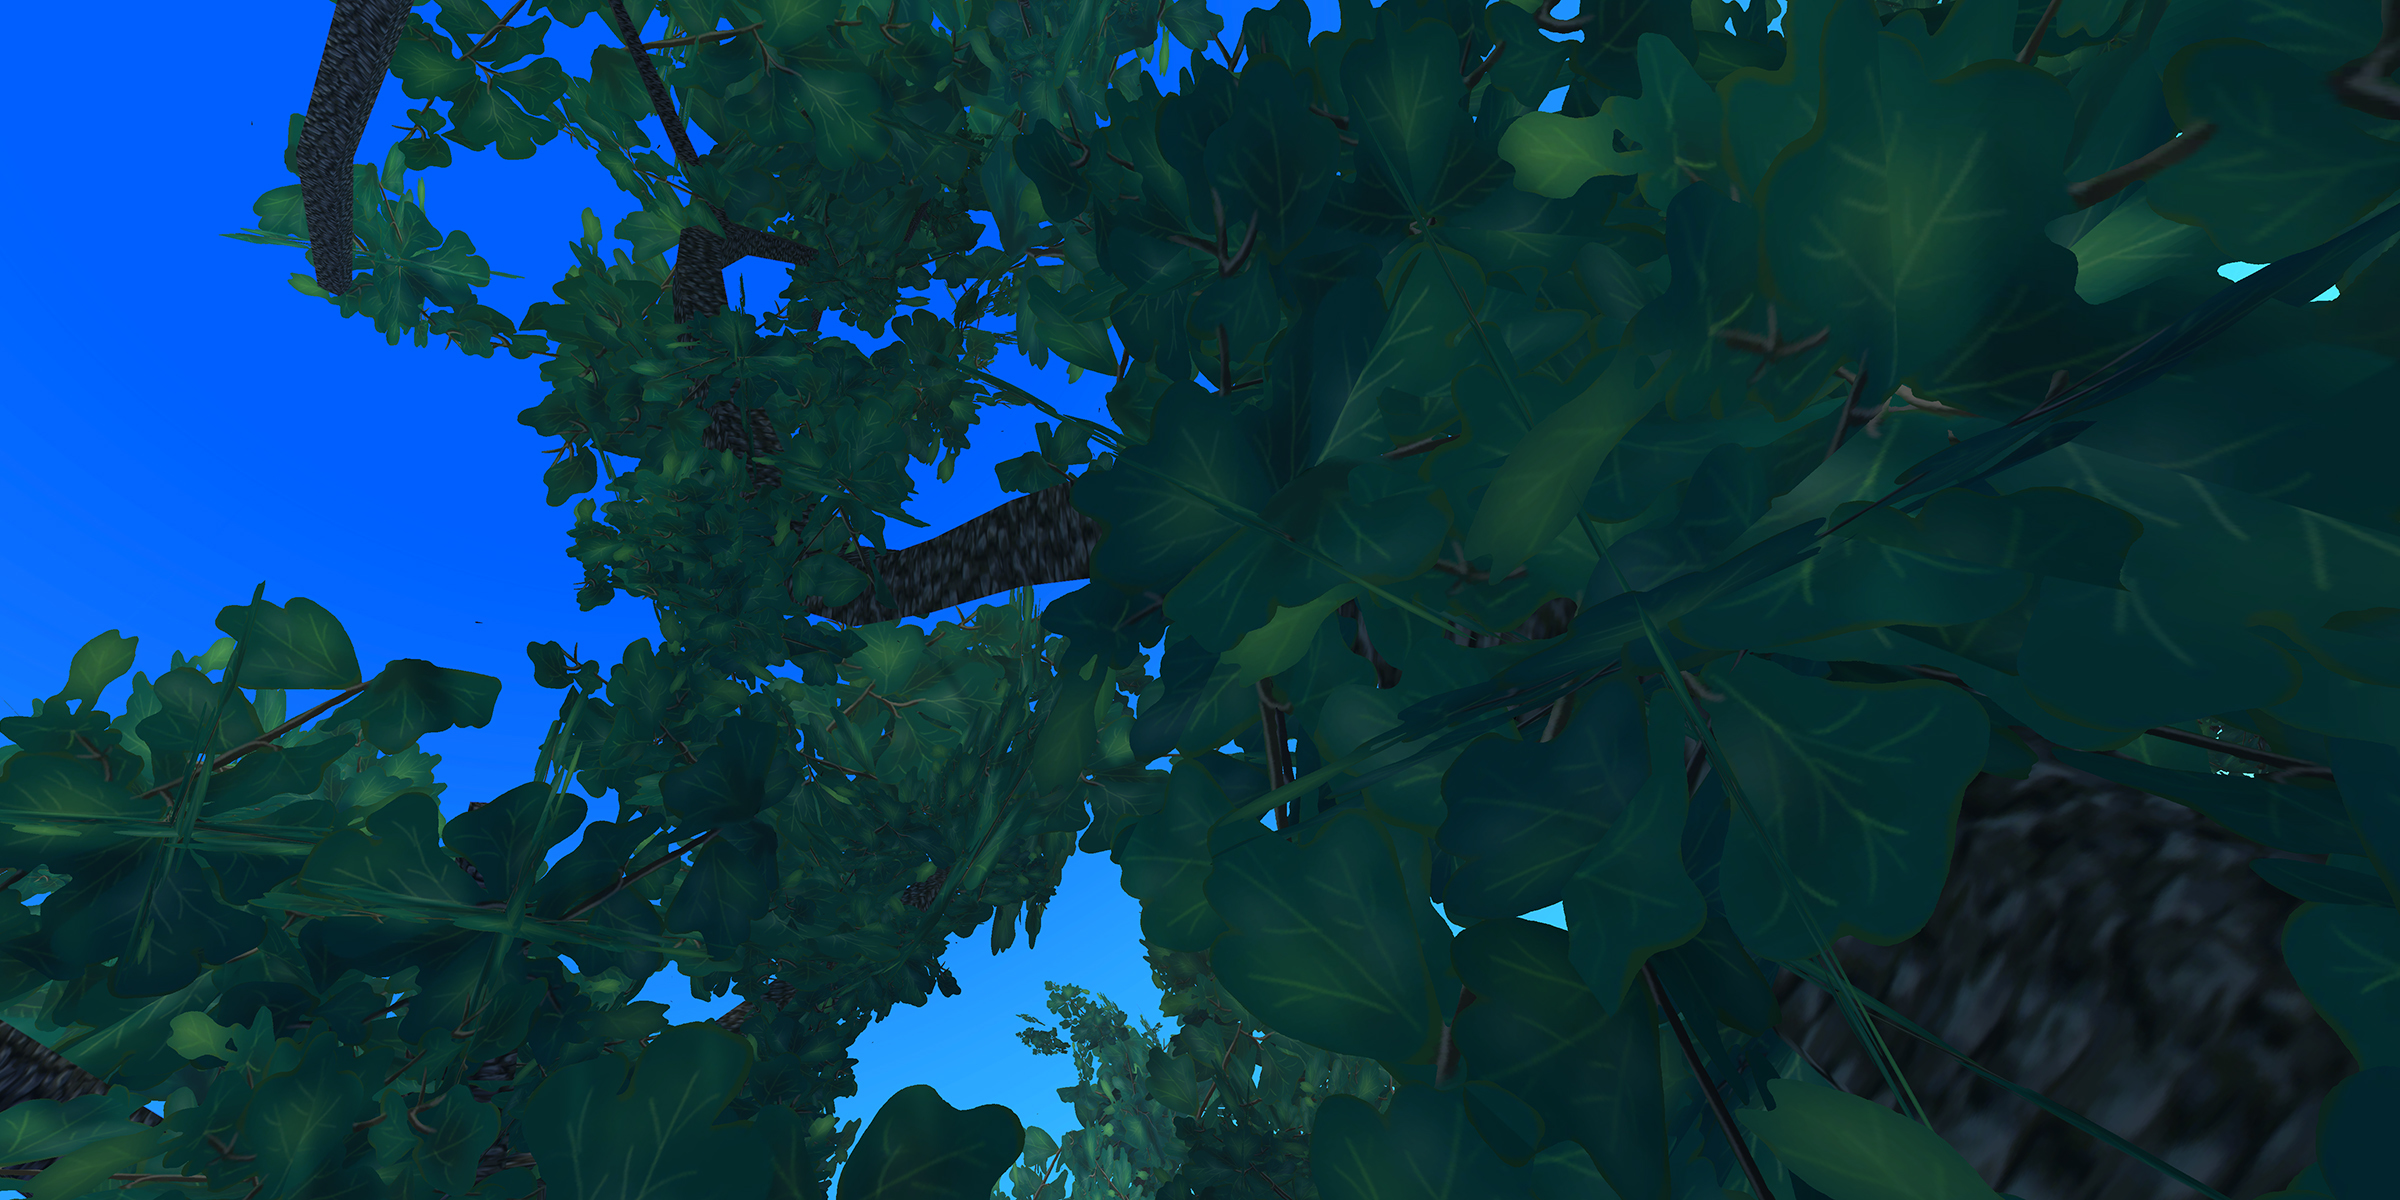 A computer-rendered drawing looking up though leaves and branches at the blue sky